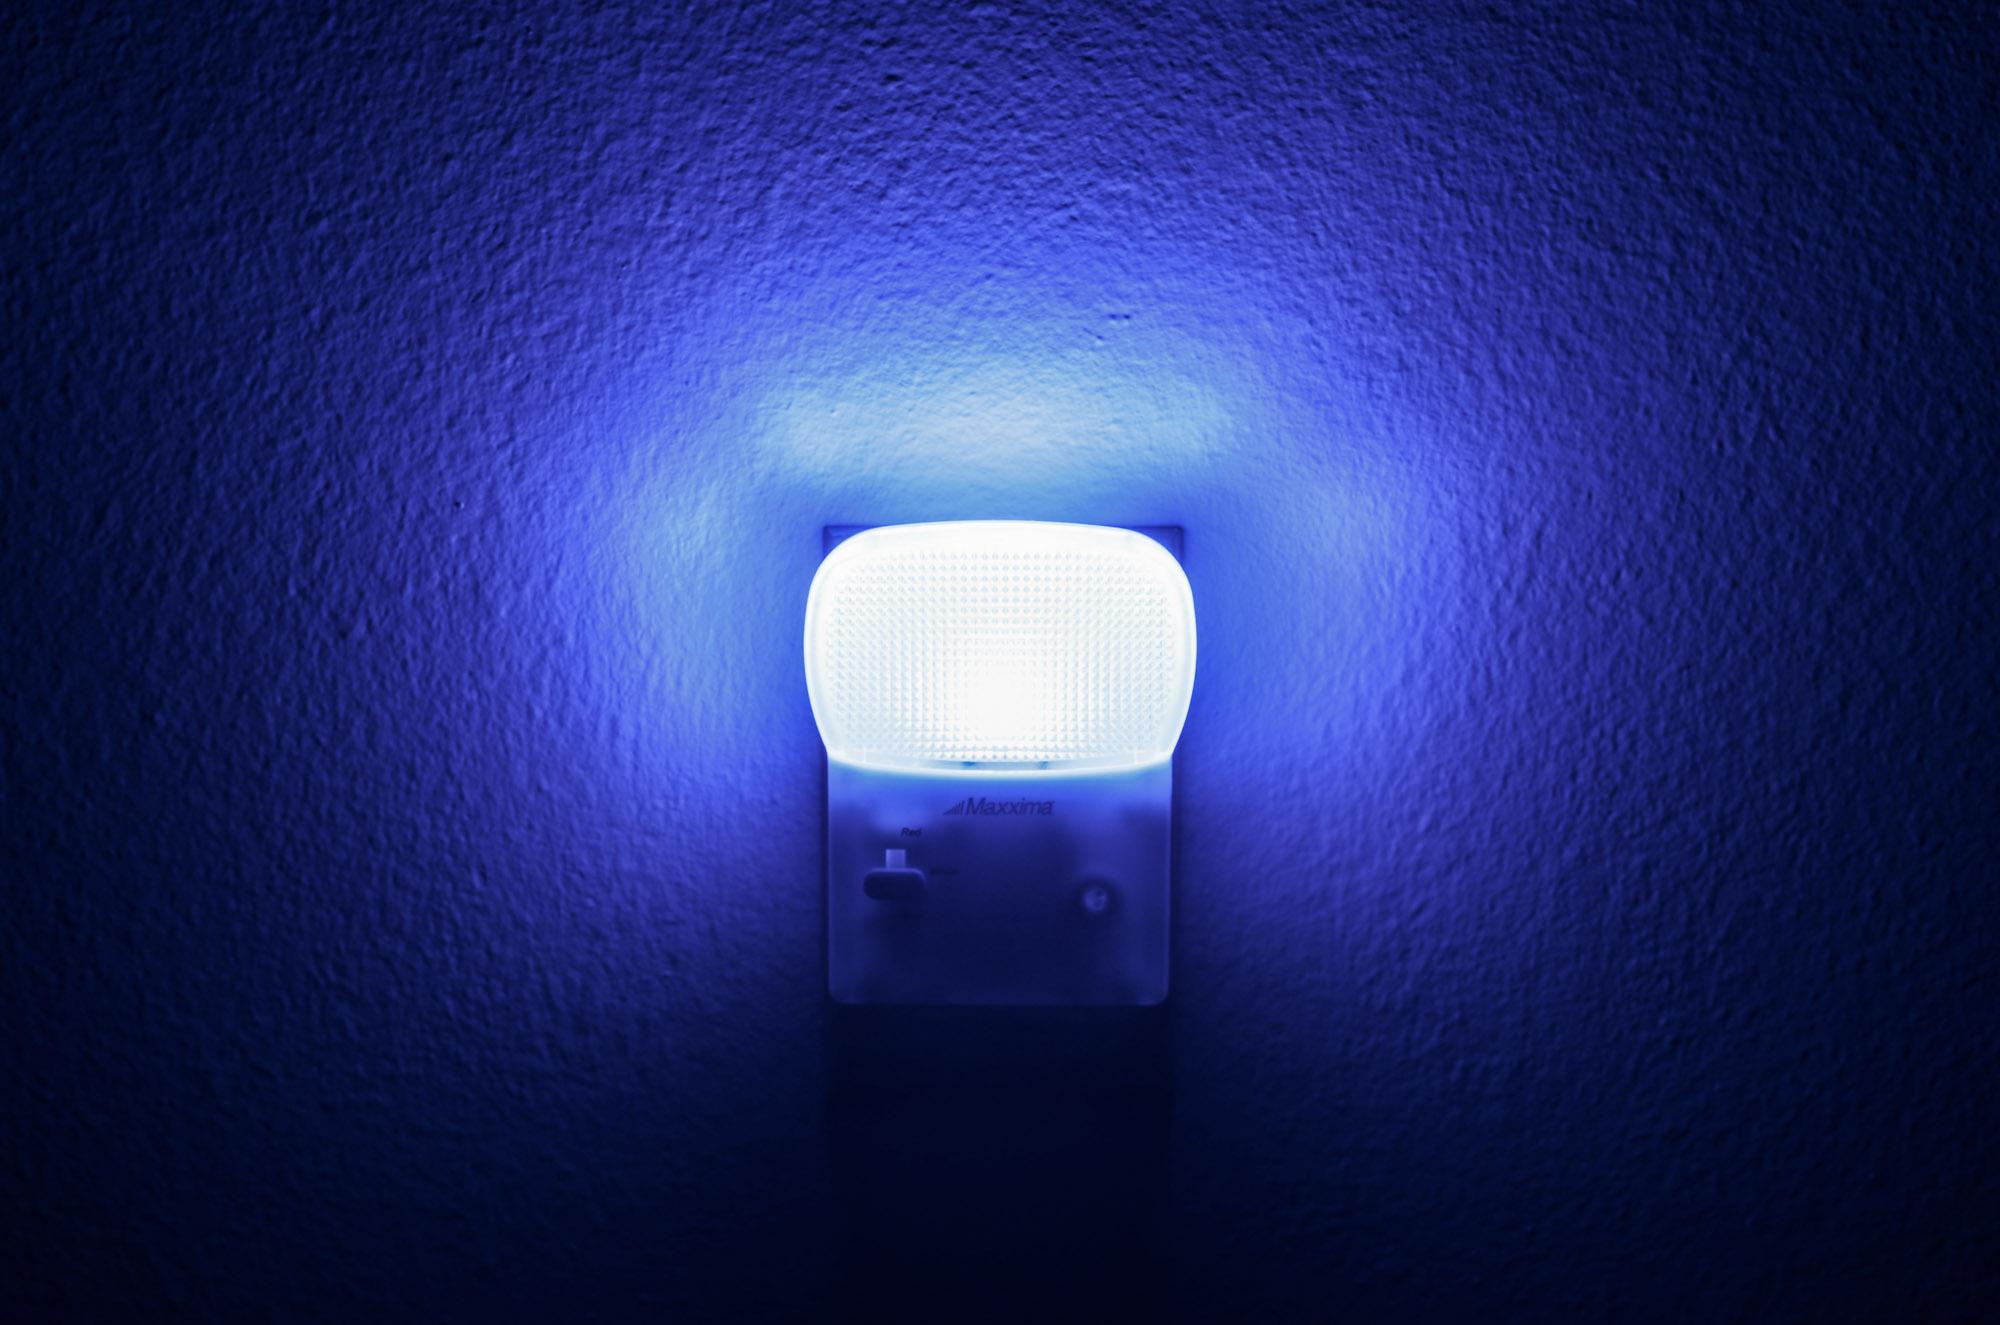 Best Nightlight For Sleep The Best Night Light Of 2019 Real Testing Your Best Digs